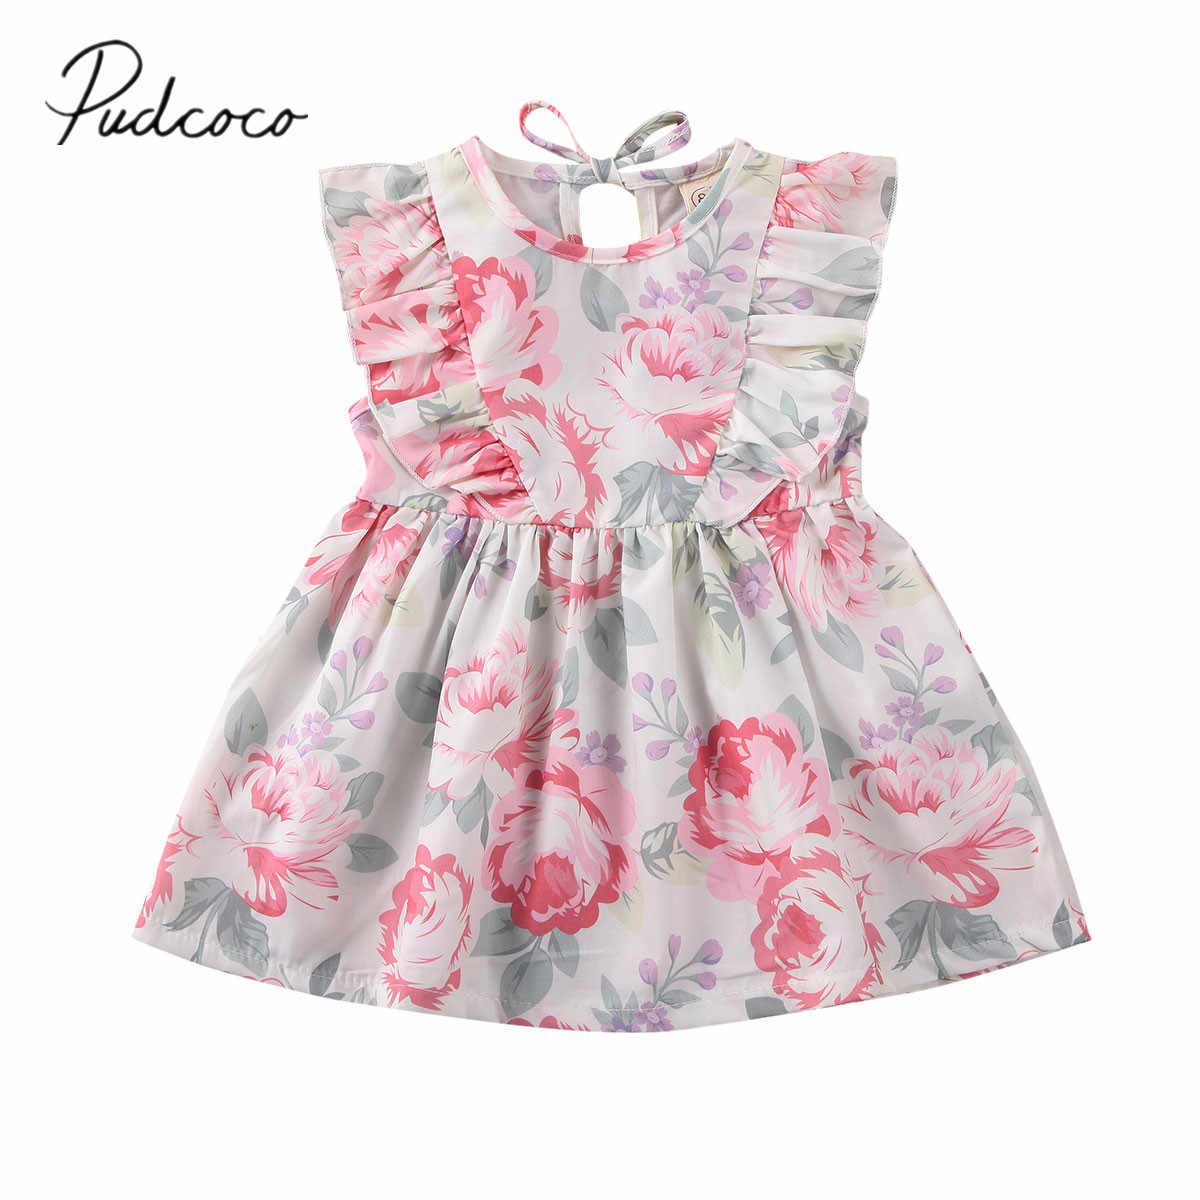 2020 Baby Summer Clothing Toddler Kid Baby Girl Clothes Ruffle Sleeve Dress Holiday Flower Dress